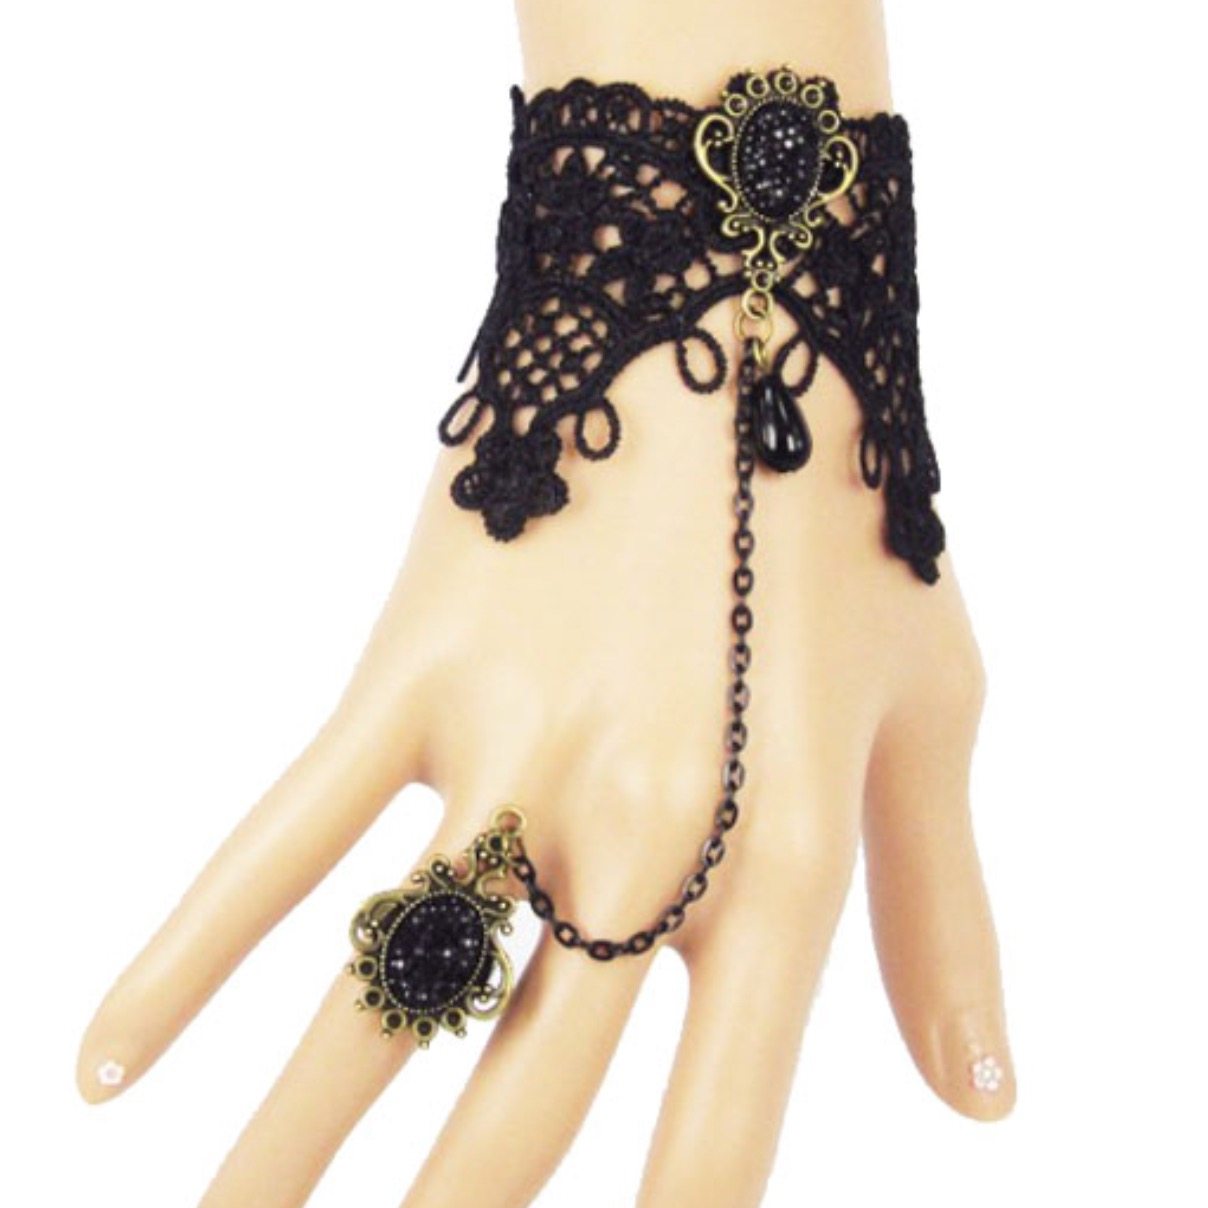 Lace cuff and ring